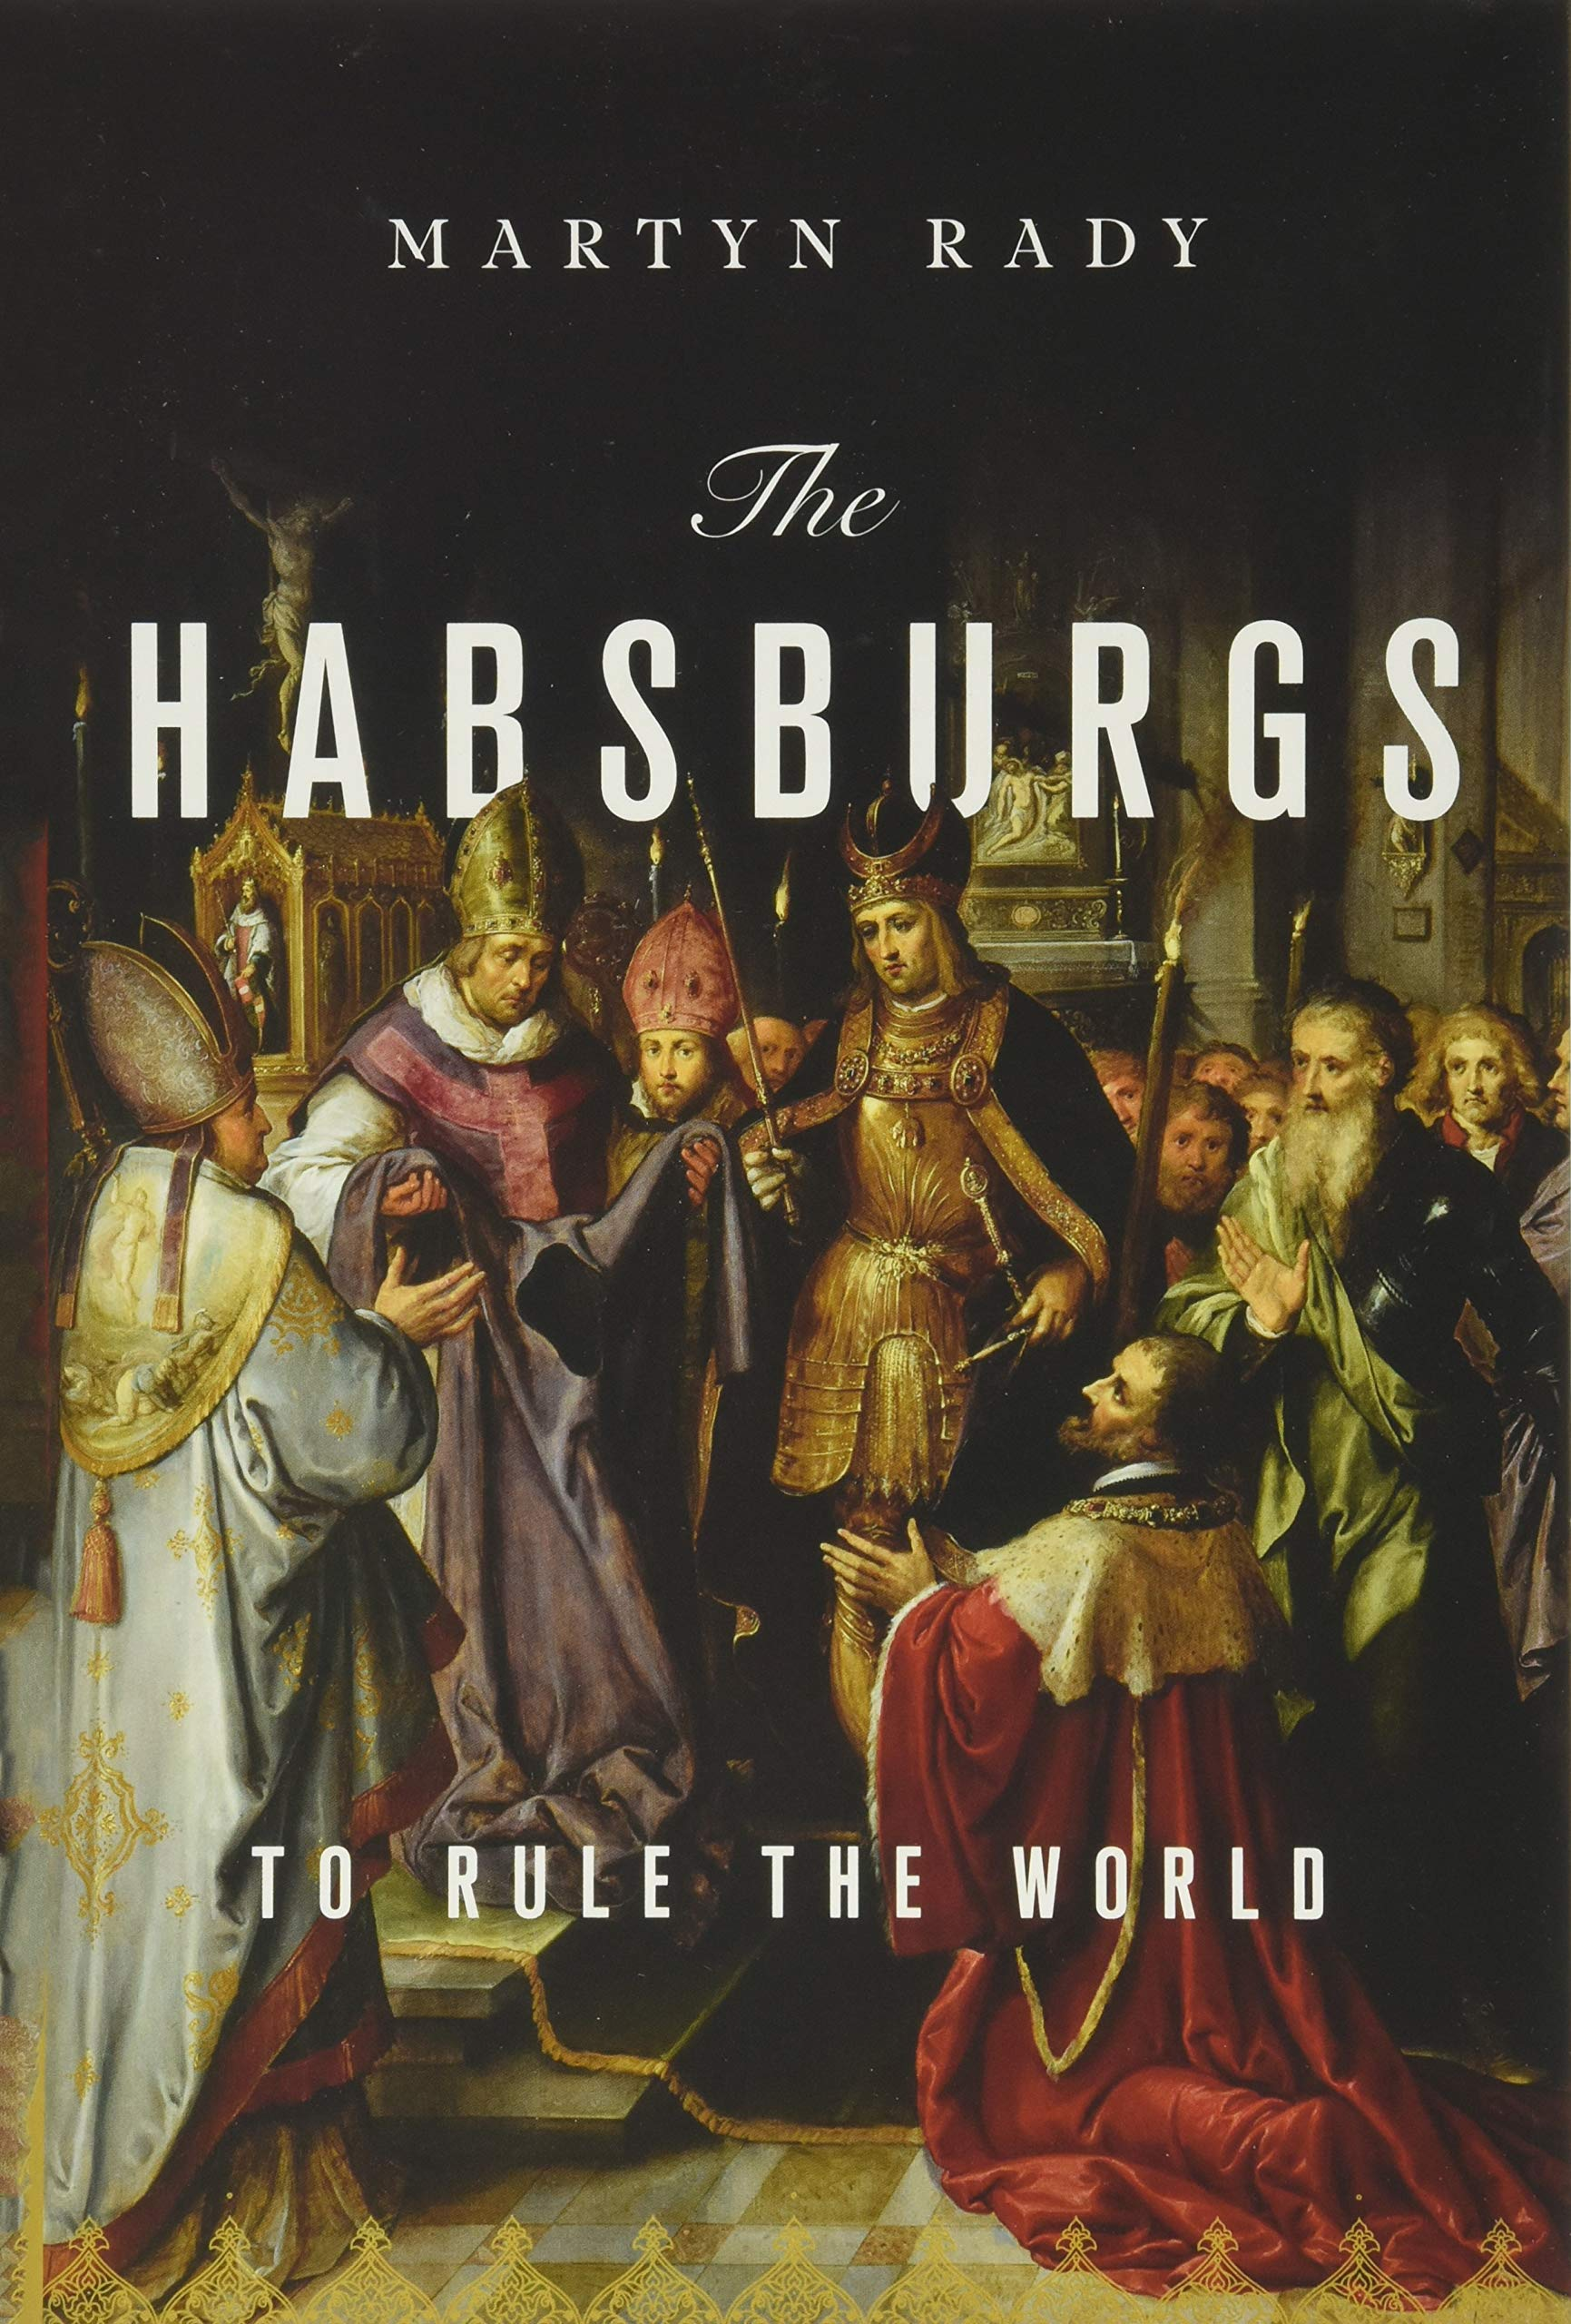 Amazon Com The Habsburgs To Rule The World 9781541644502 Rady Martyn Books